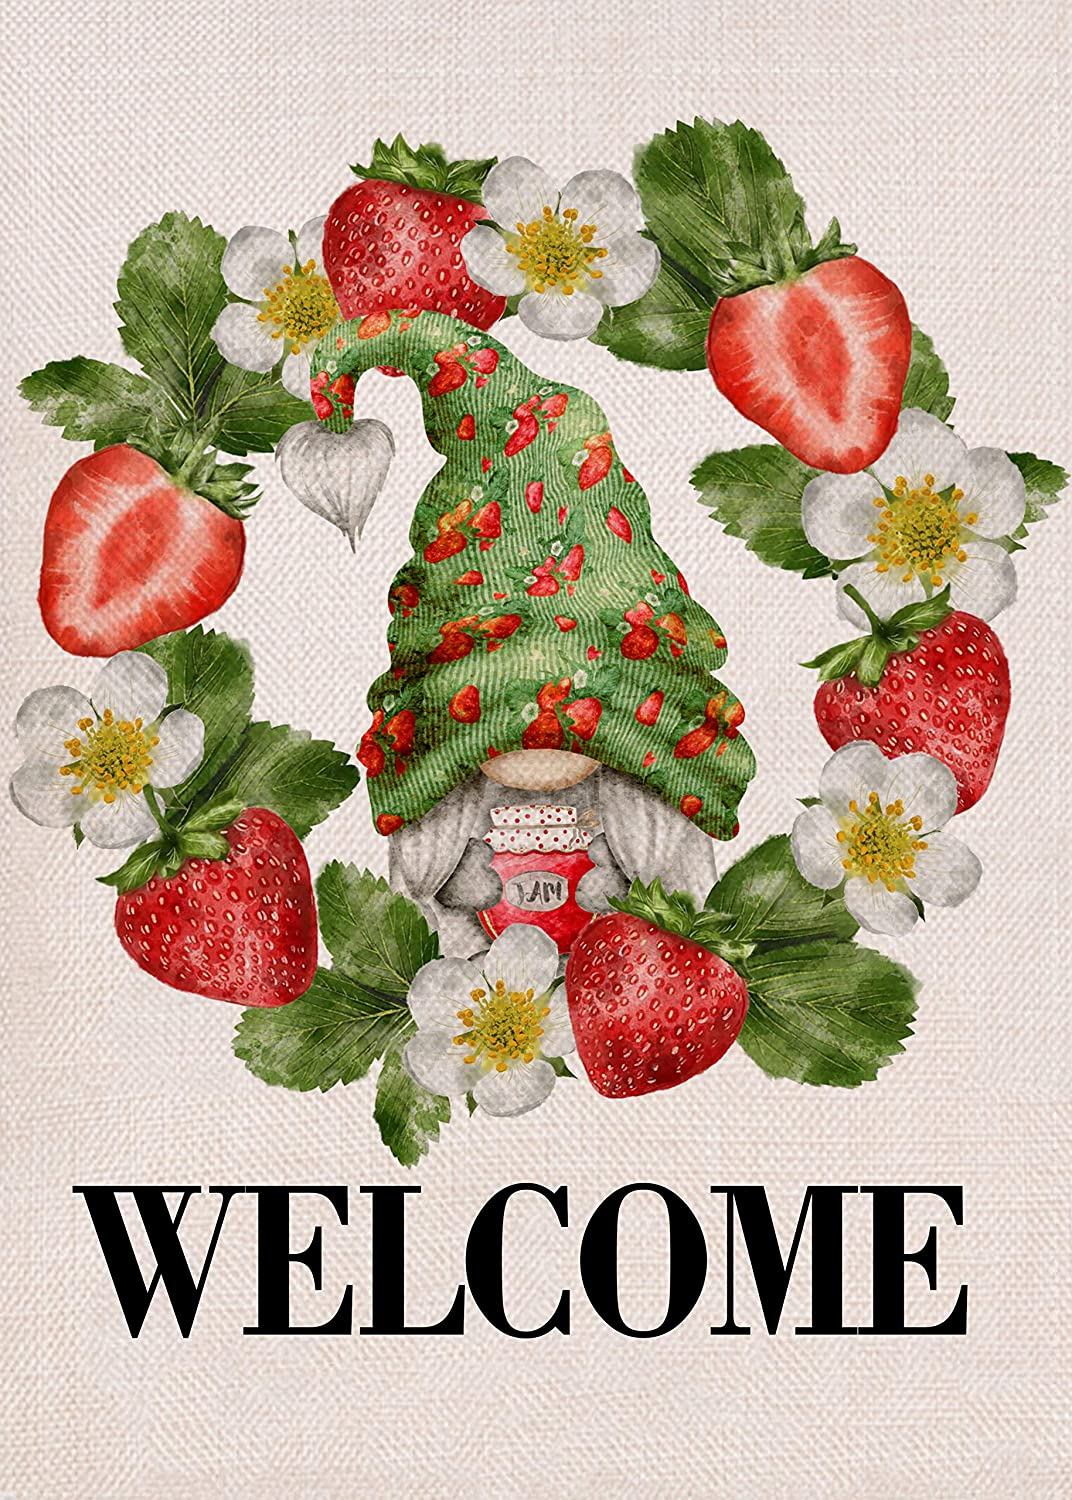 Covido Home Decorative Spring Summer Gnome Garden Flag, Strawberry Wreath House Yard Lawn Welcome Decor Farmhouse Outside Flower Decorations, Seasonal Outdoor Small Burlap Flag Double Sided 12 x 18